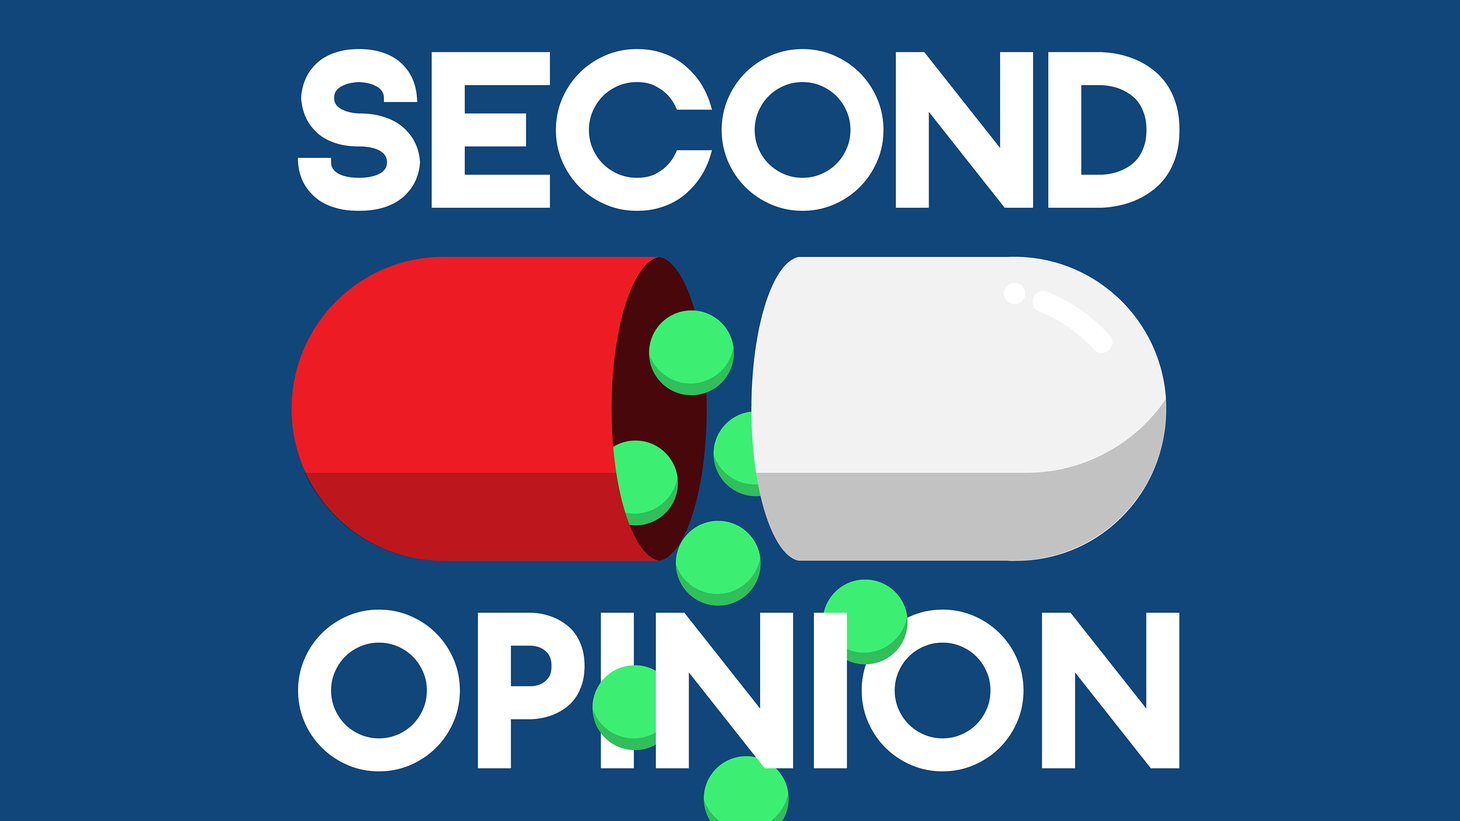 Recommendations to approve two drugs that are not ready for prime time.